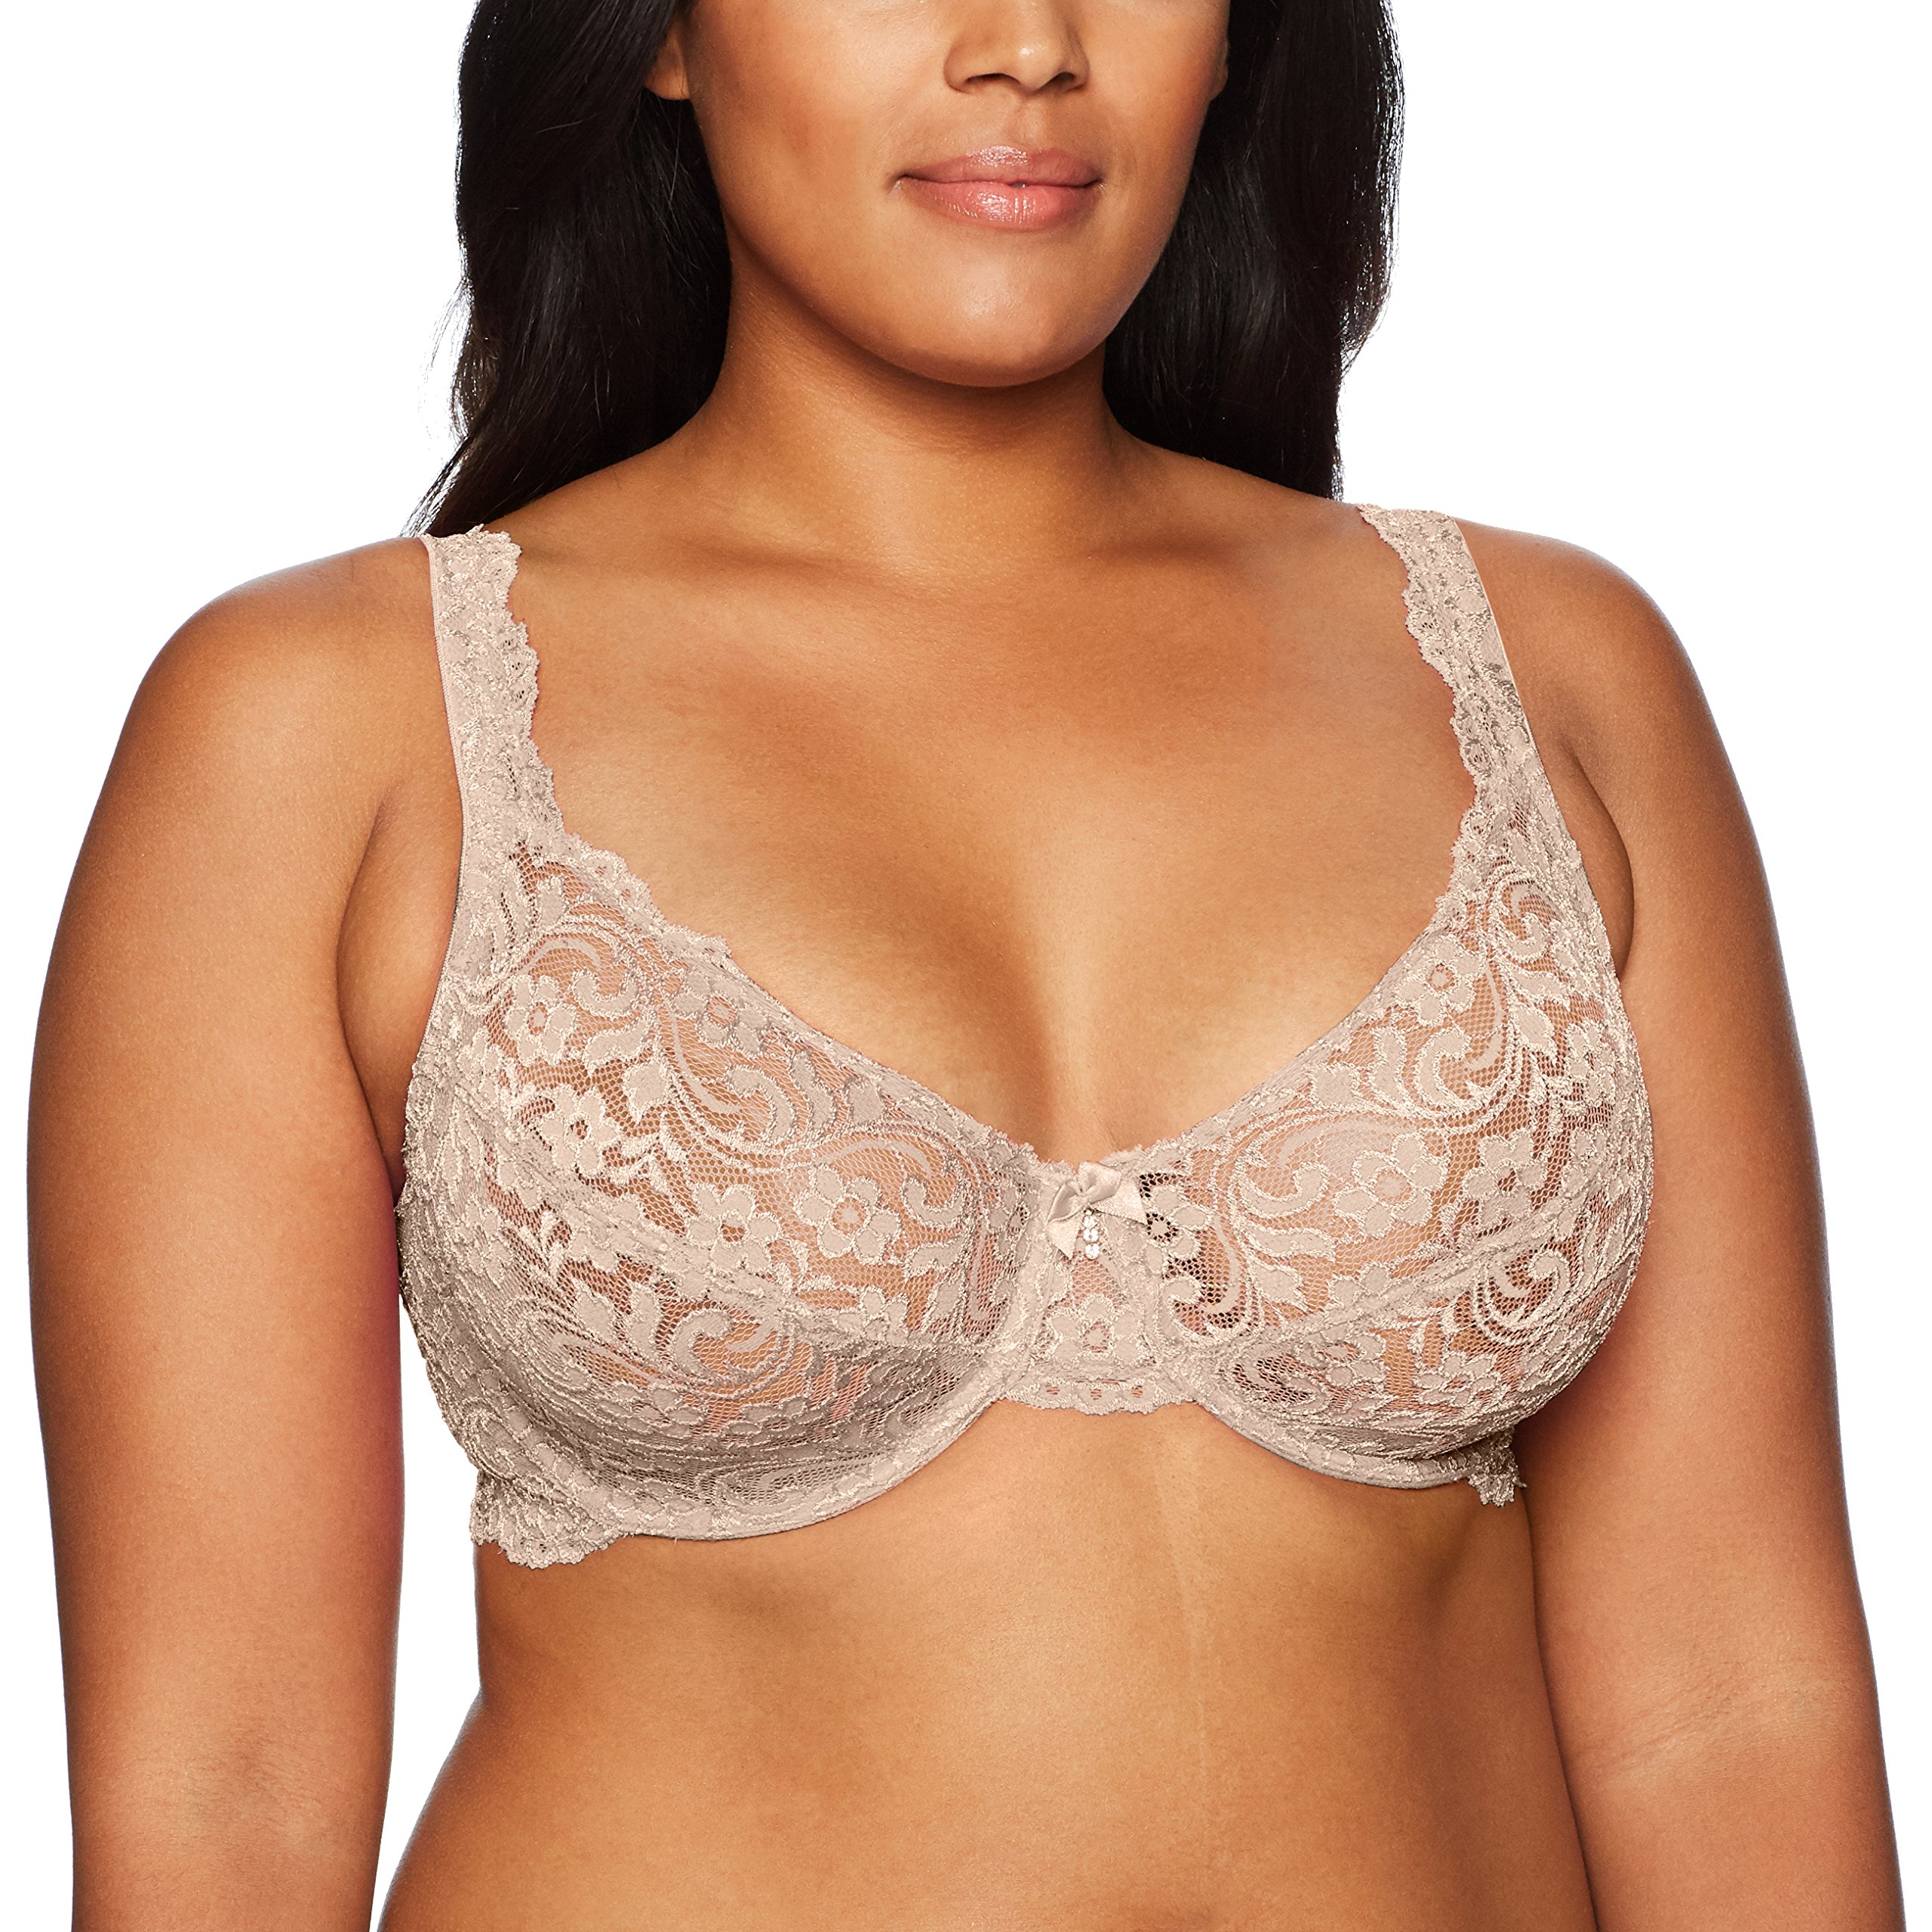 Smart+Sexy Women's Plus Size Curvy Signature Lace Unlined Underwire Bra with Added Support, in The Buff, 38DDD